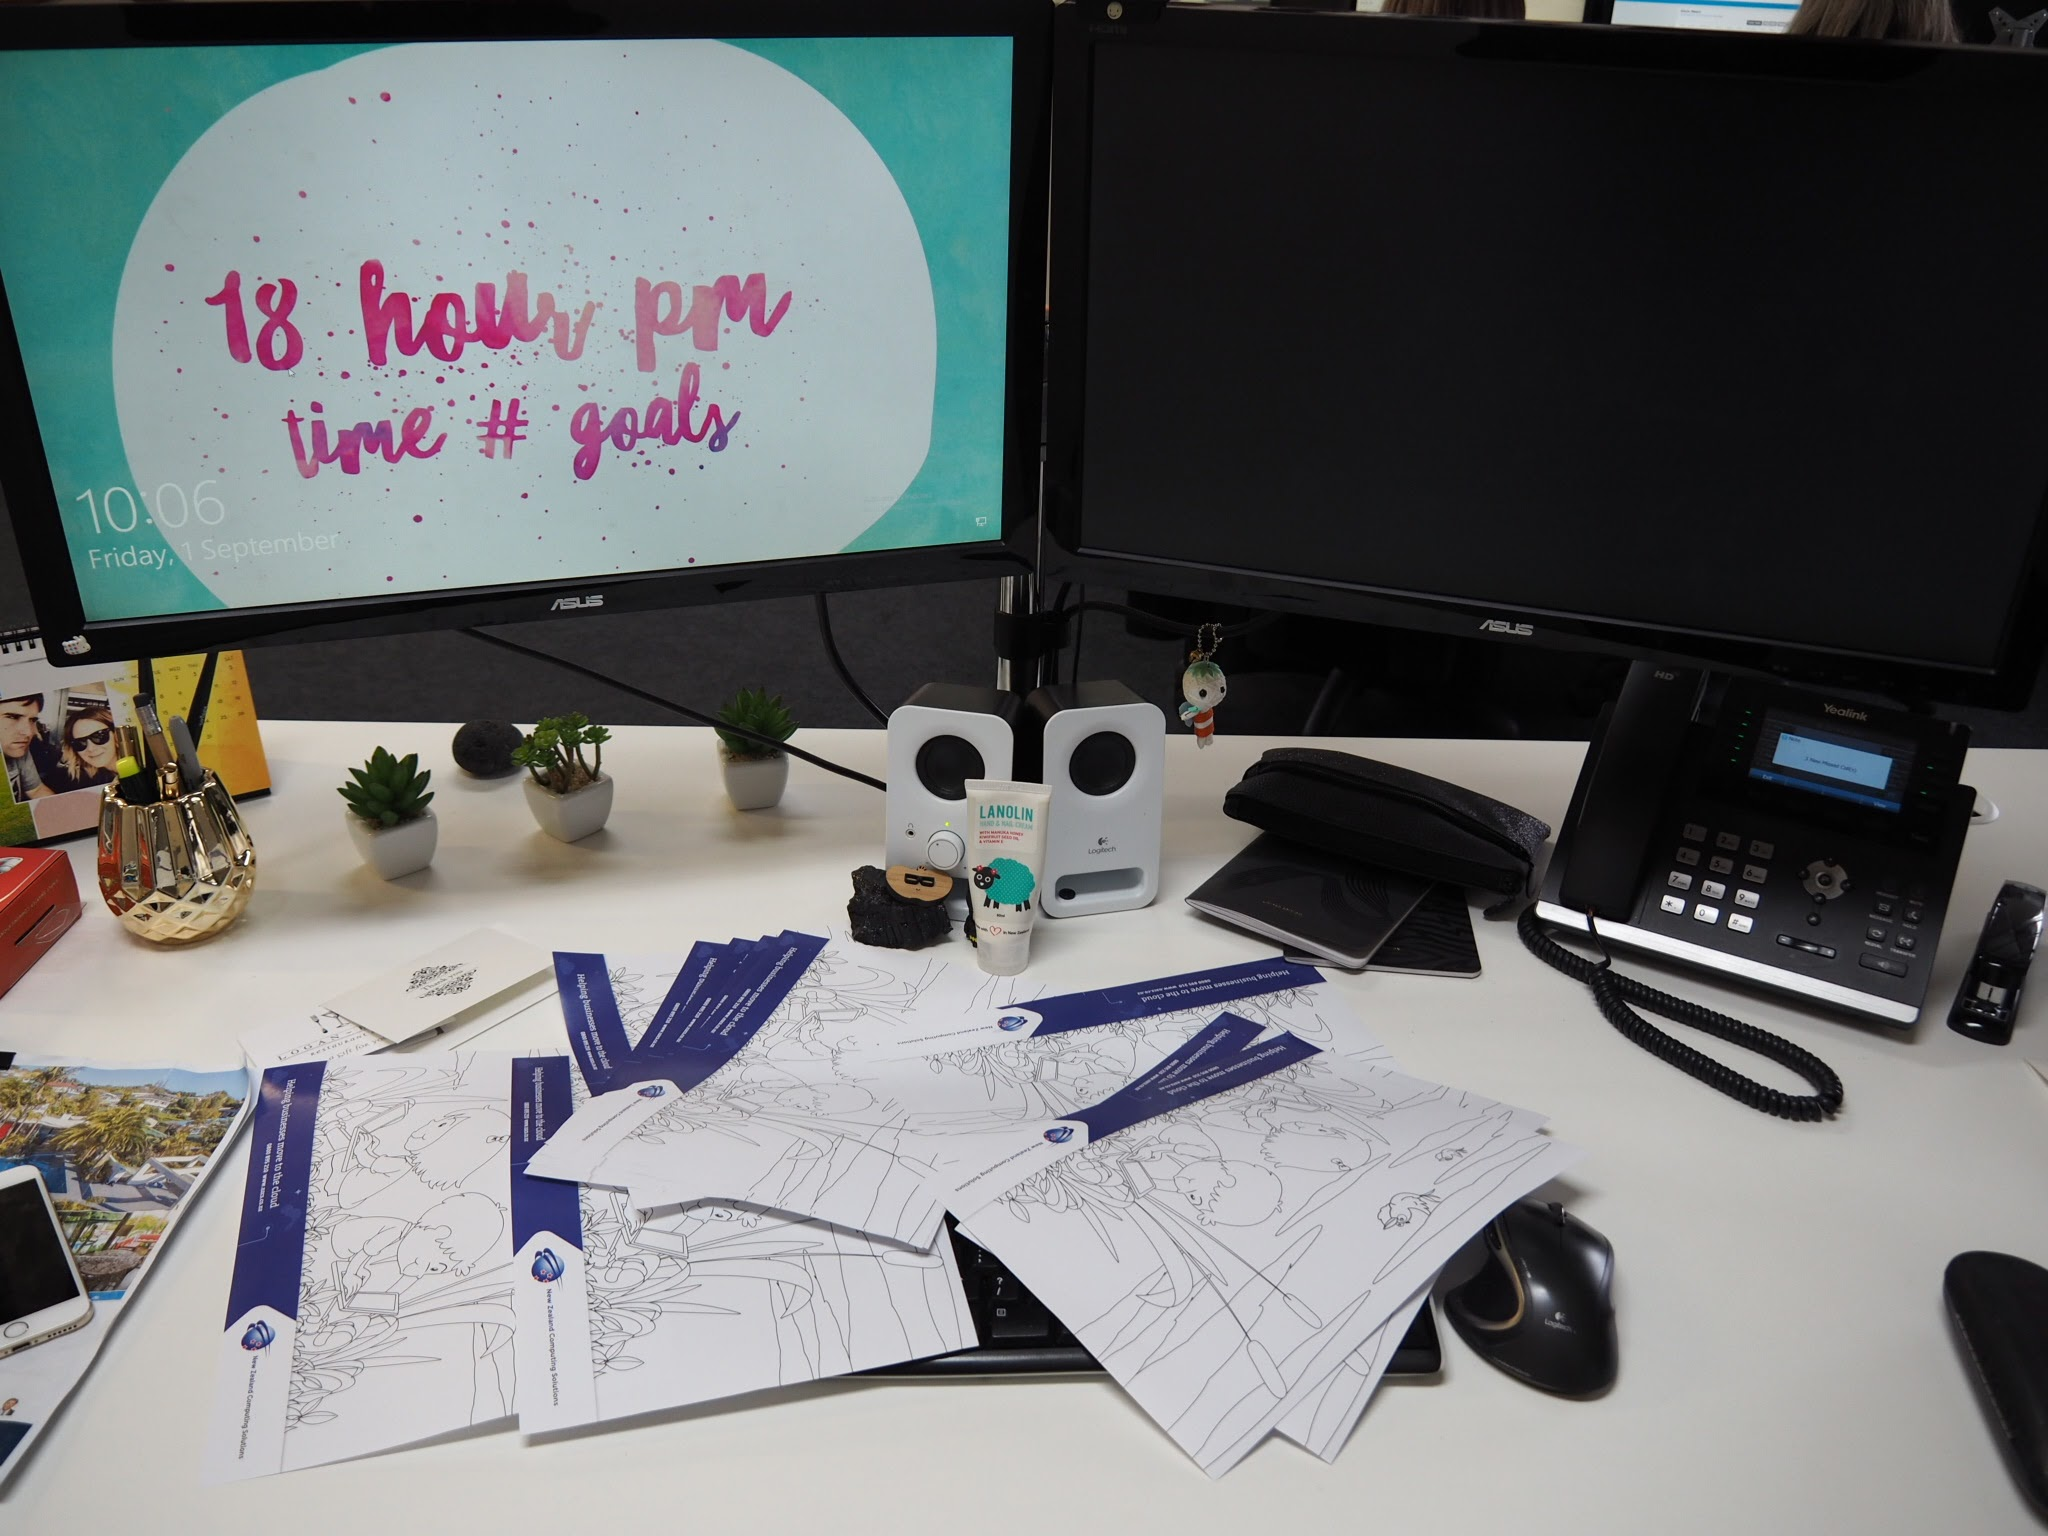 Desk with paper on it